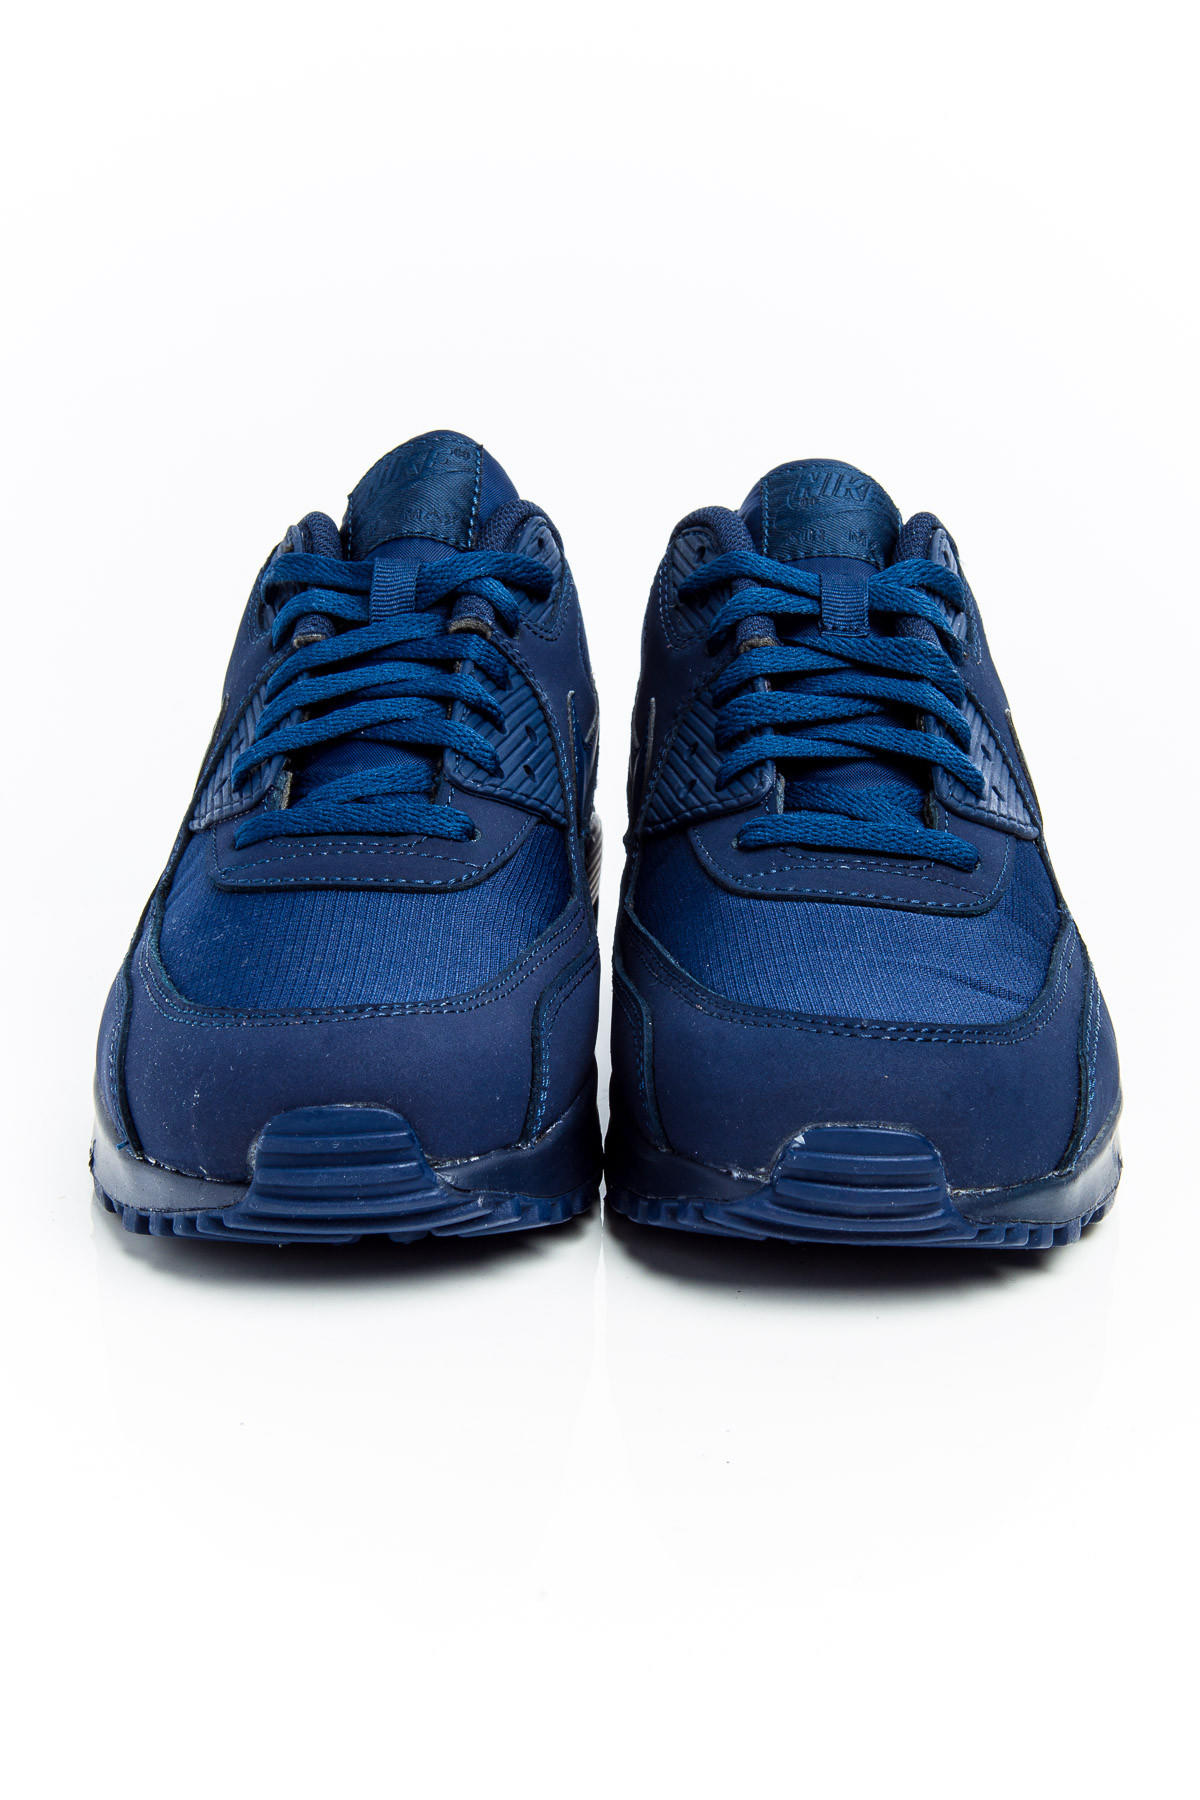 Nike Air Max 90 Essentail Midnight Navy from Probus  845e1228d